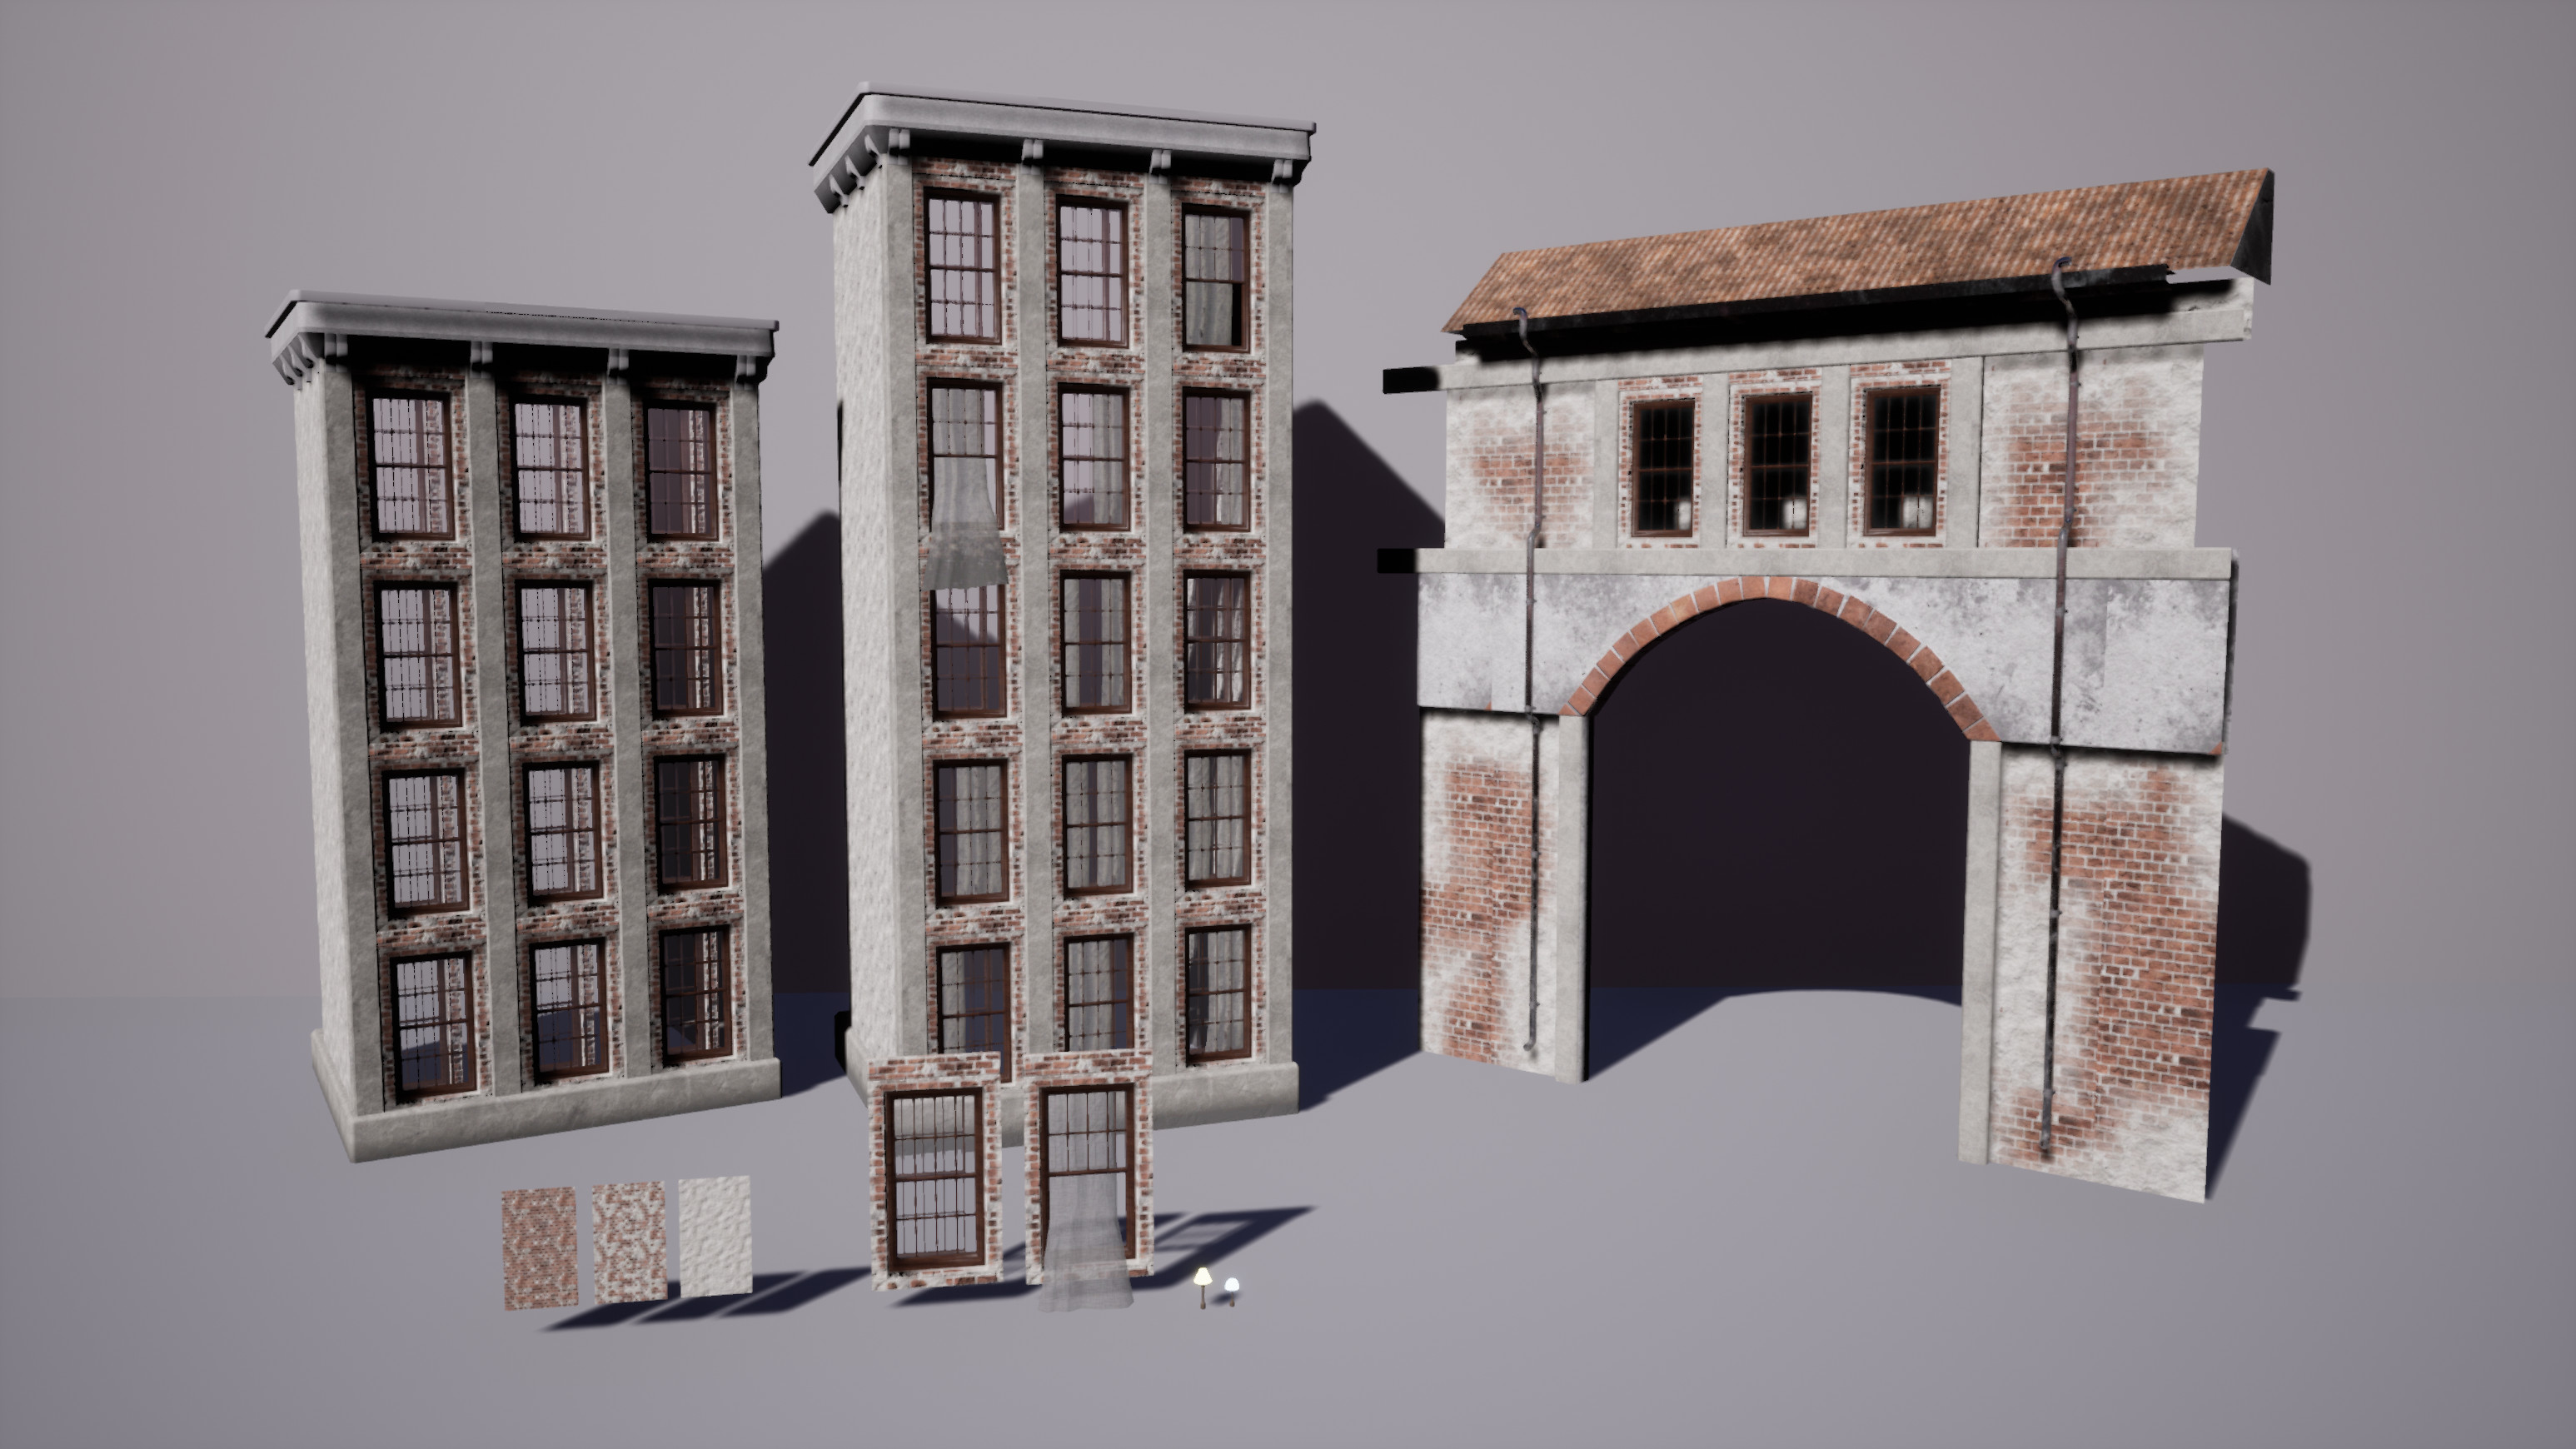 Building 1; two of the variants and the arch made from the same modular pieces (except the vault)